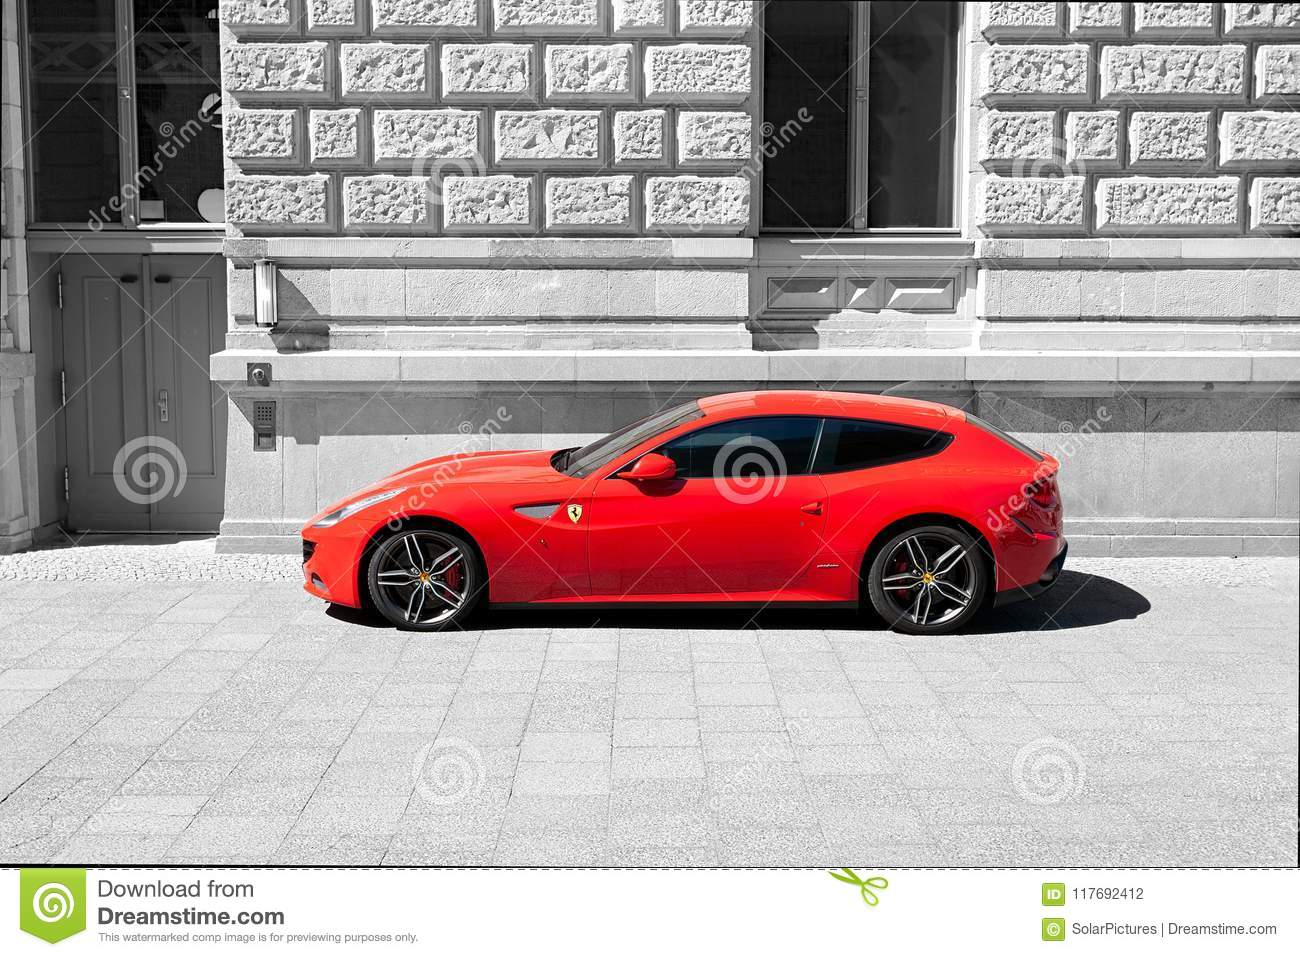 Ferrari F12 Berlinetta In Rosso Corsa Red Color Isolated In Front Of A Building In Black And White Editorial Photography Image Of Contrast Corsa 117692412